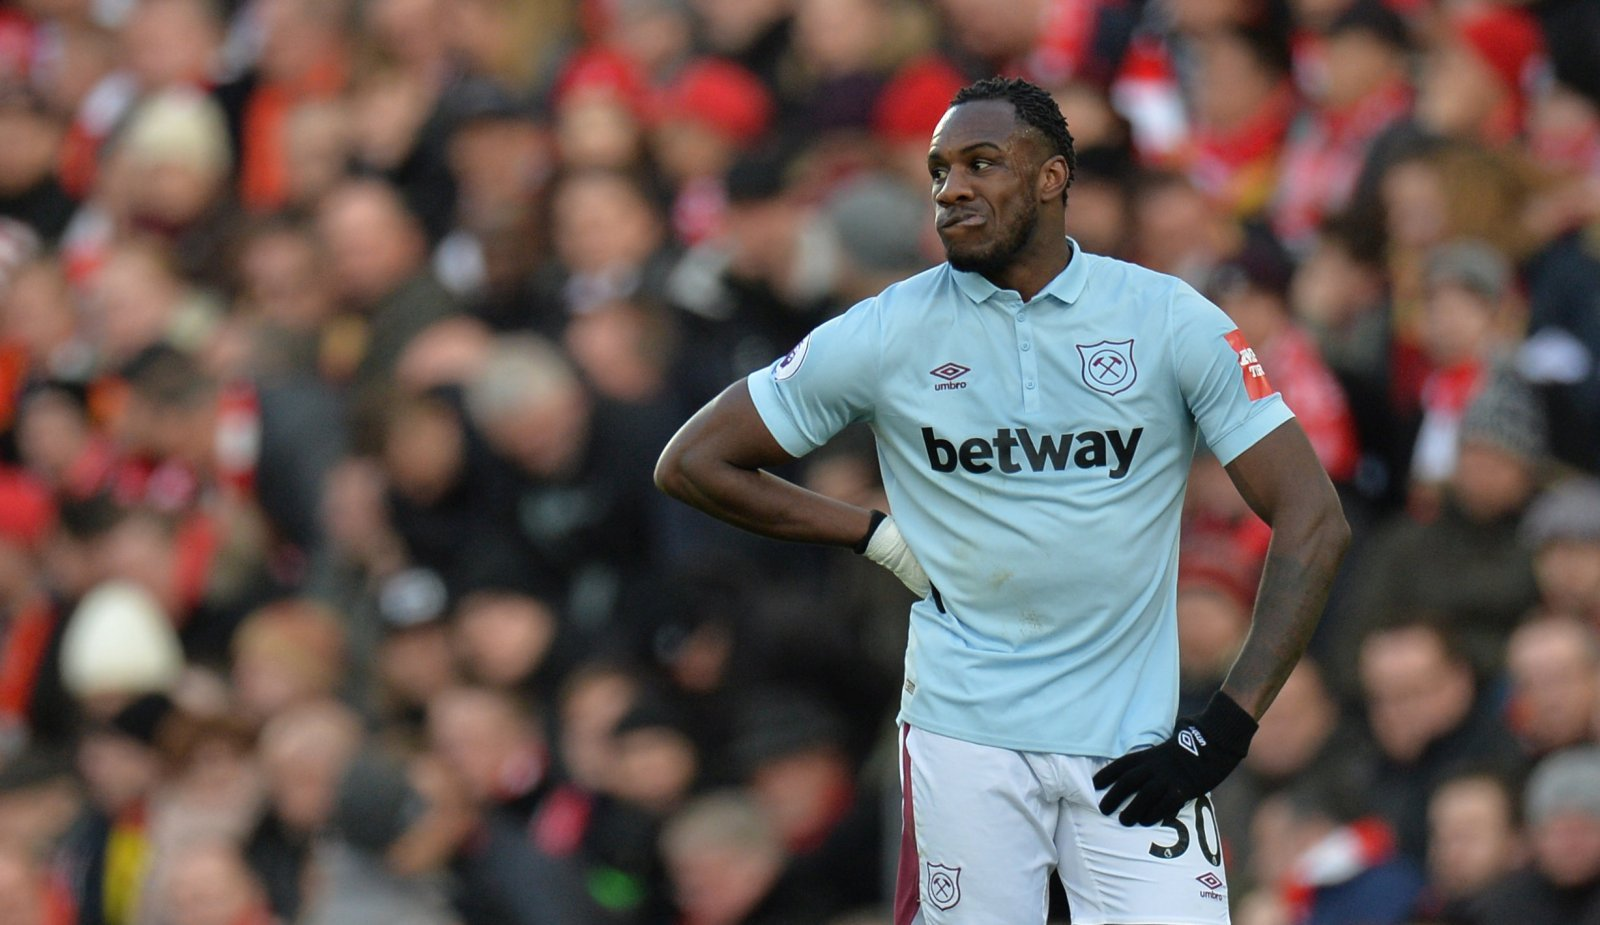 Crystal Palace should abandon their interest in Michail Antonio